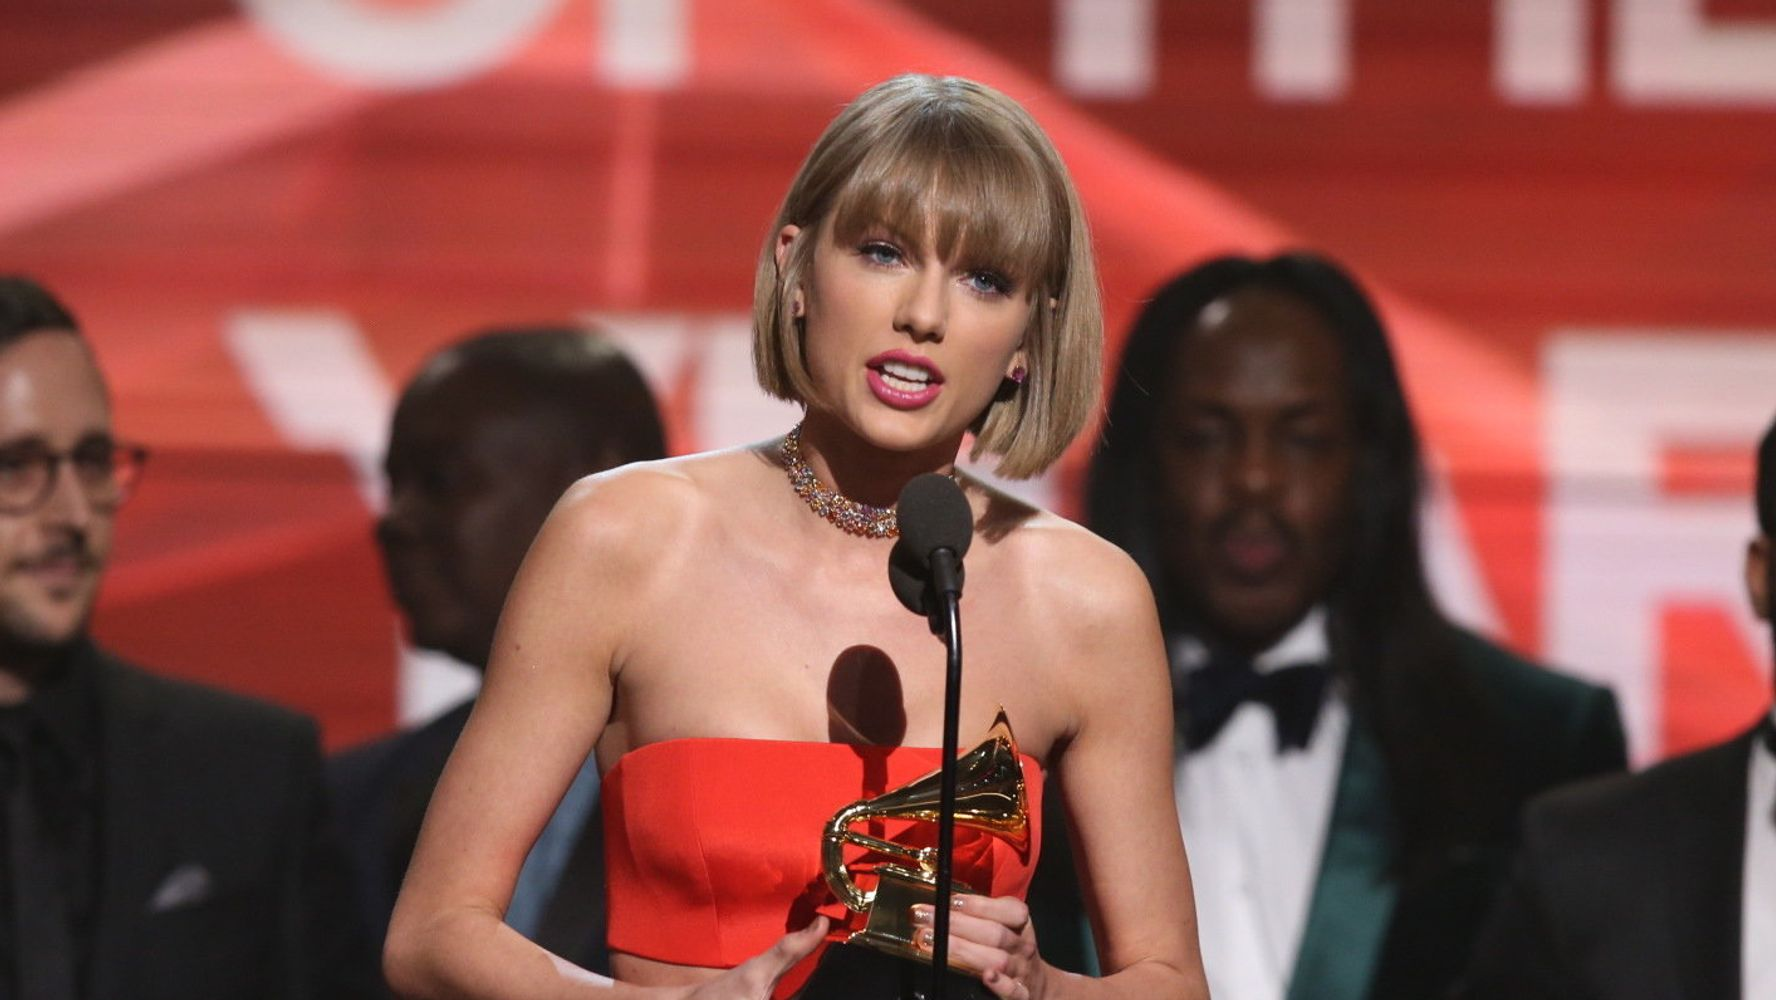 Taylor Swift's Empowering Grammys Commercial Misses The Mark